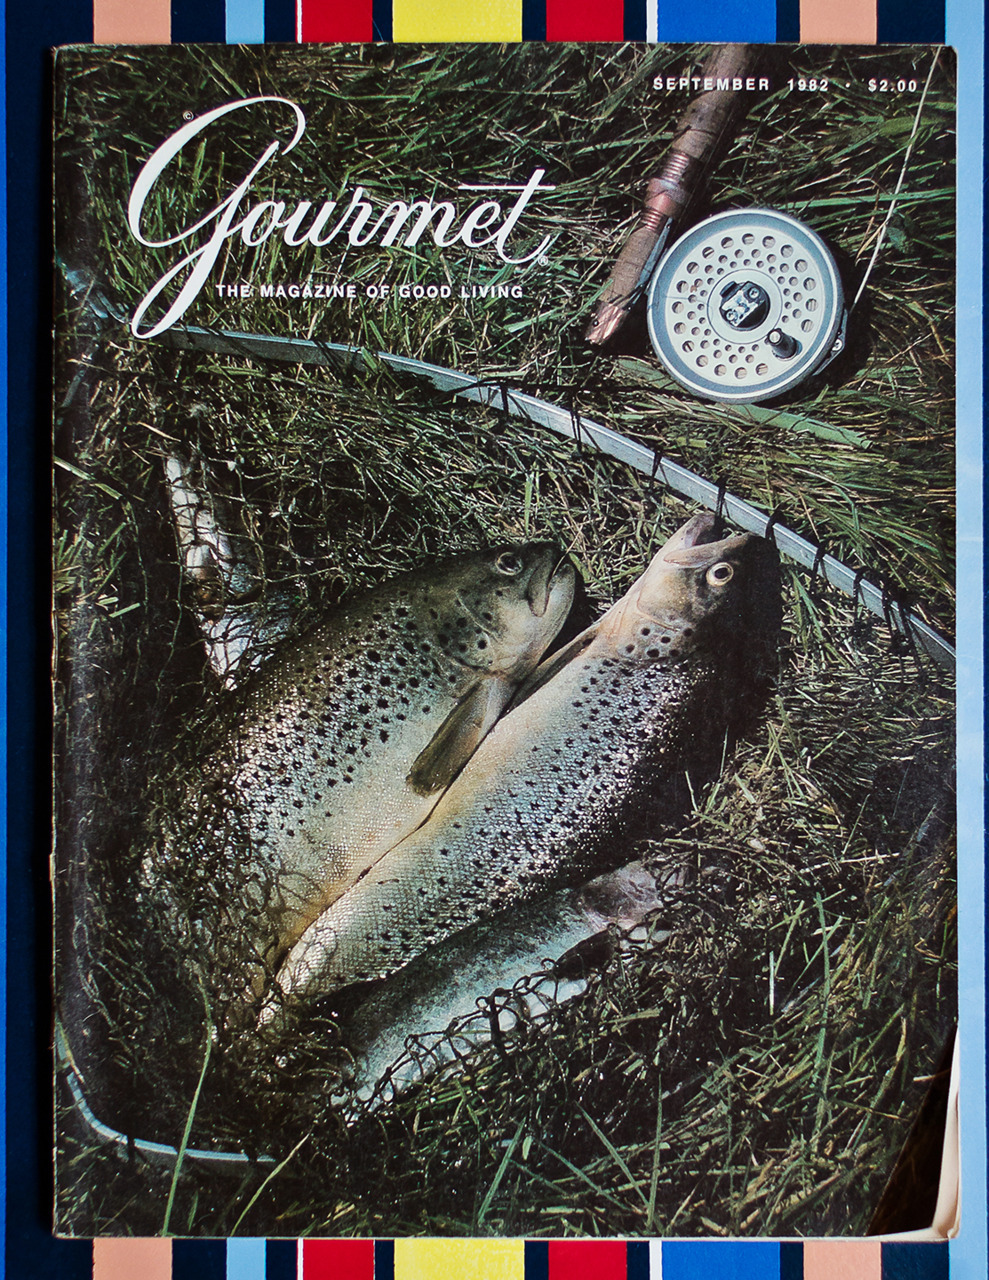 Gourmet: September 1982